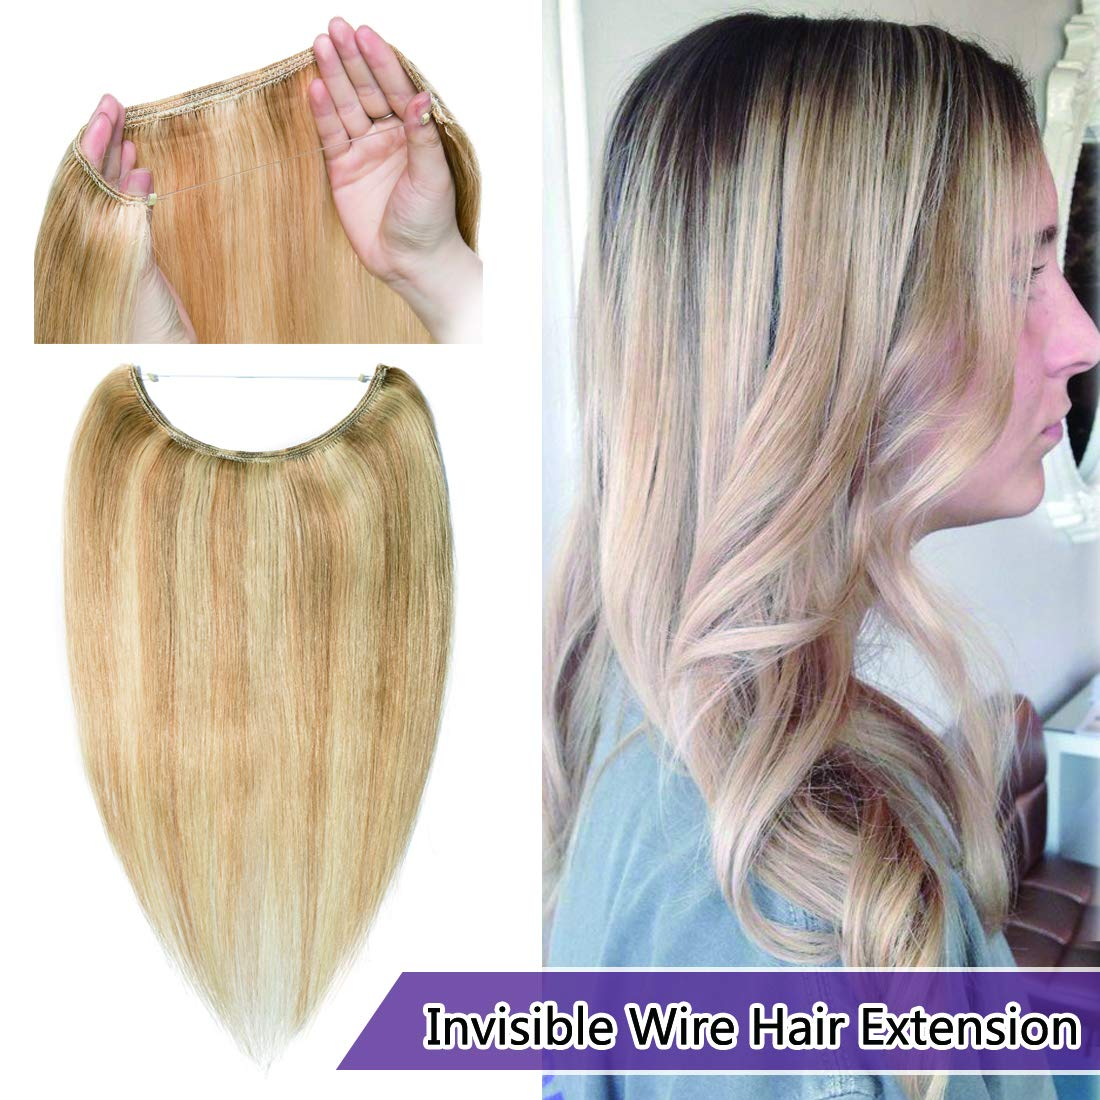 Human Hair Flip on Invisible Hidden String Crown Hair Extensions No Clips in Secret Hairpieces with Miracle Transparent Fish Line For Women #18P613 Ash Blonde&Bleach Blonde 16 inches 60g